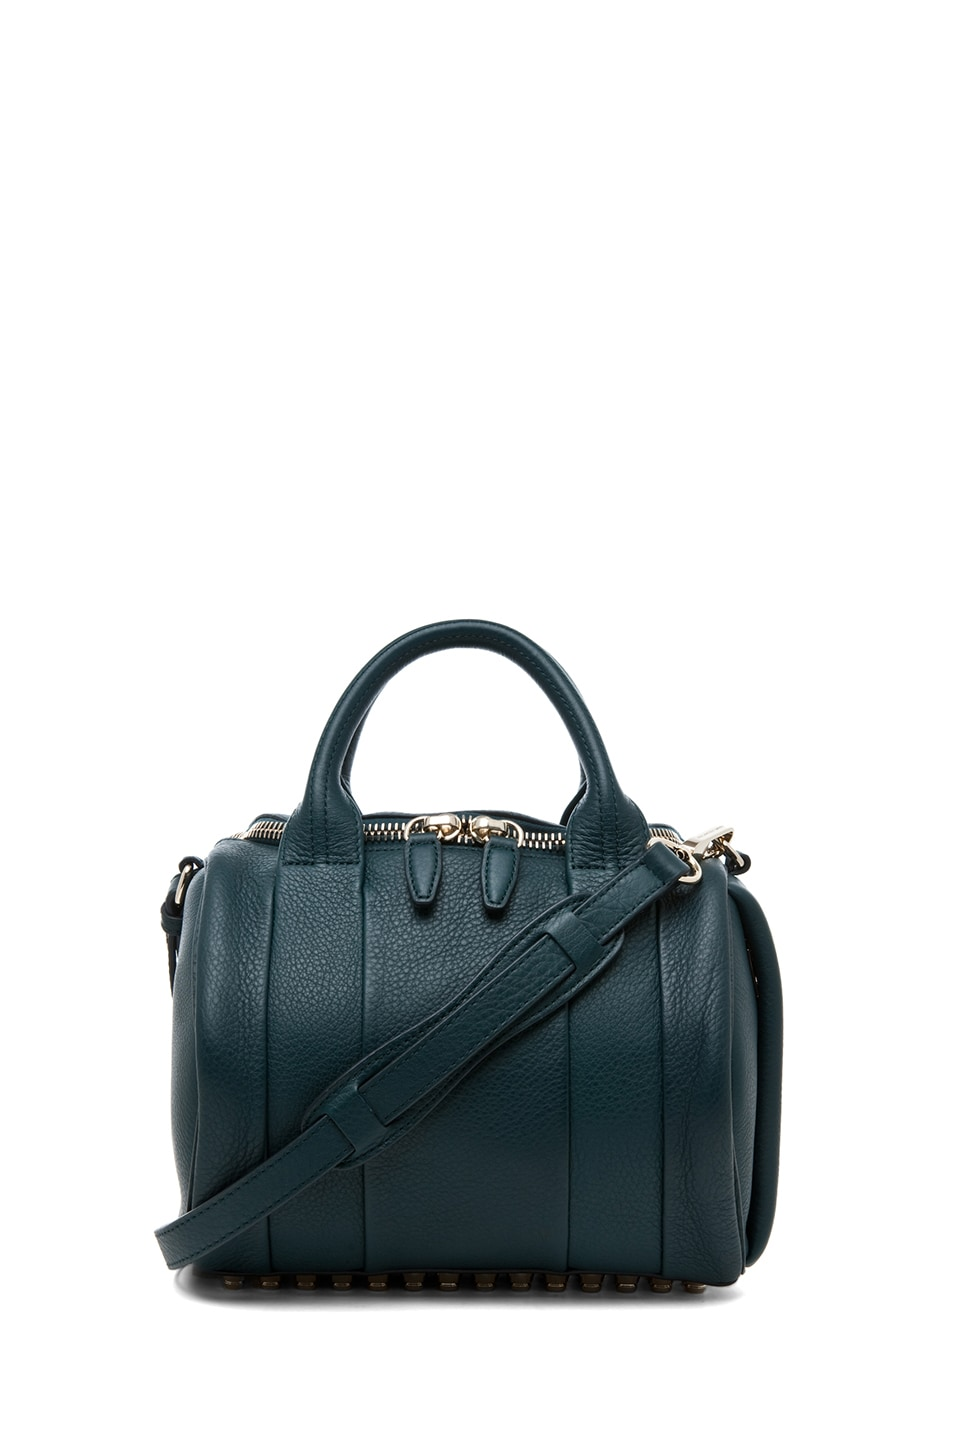 Image 1 of Alexander Wang Rockie Satchel in Dark Argon